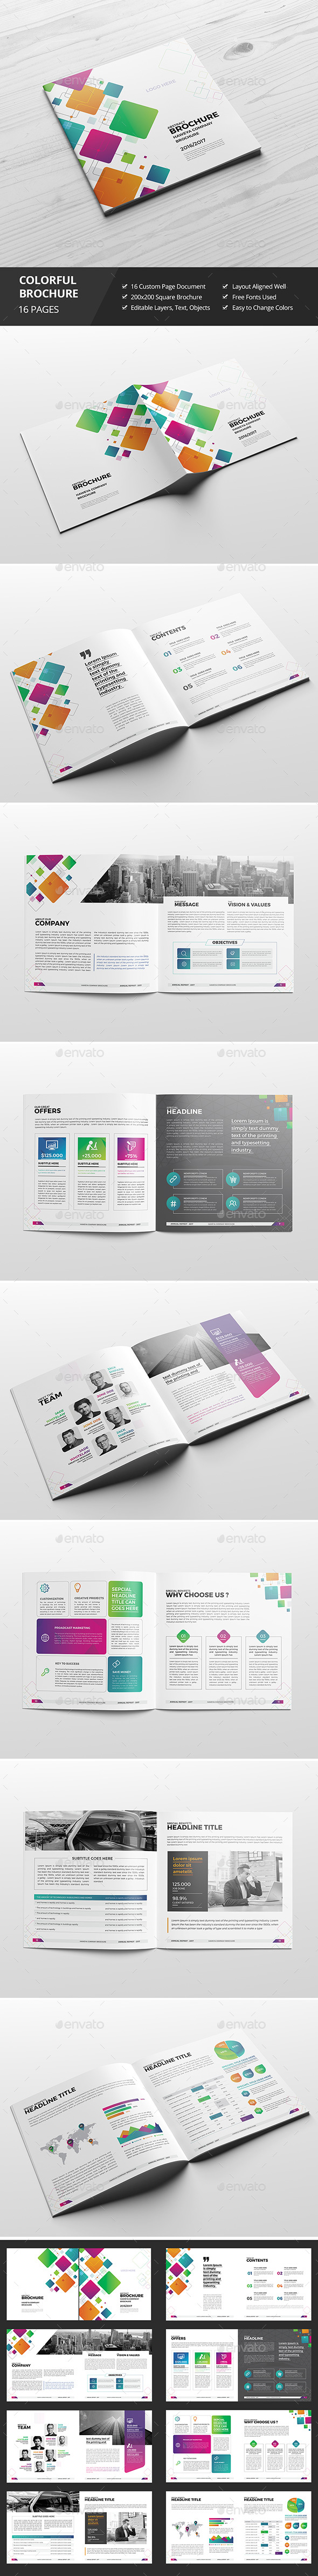 Haweya Colorful Square Brochure 03 - Corporate Brochures